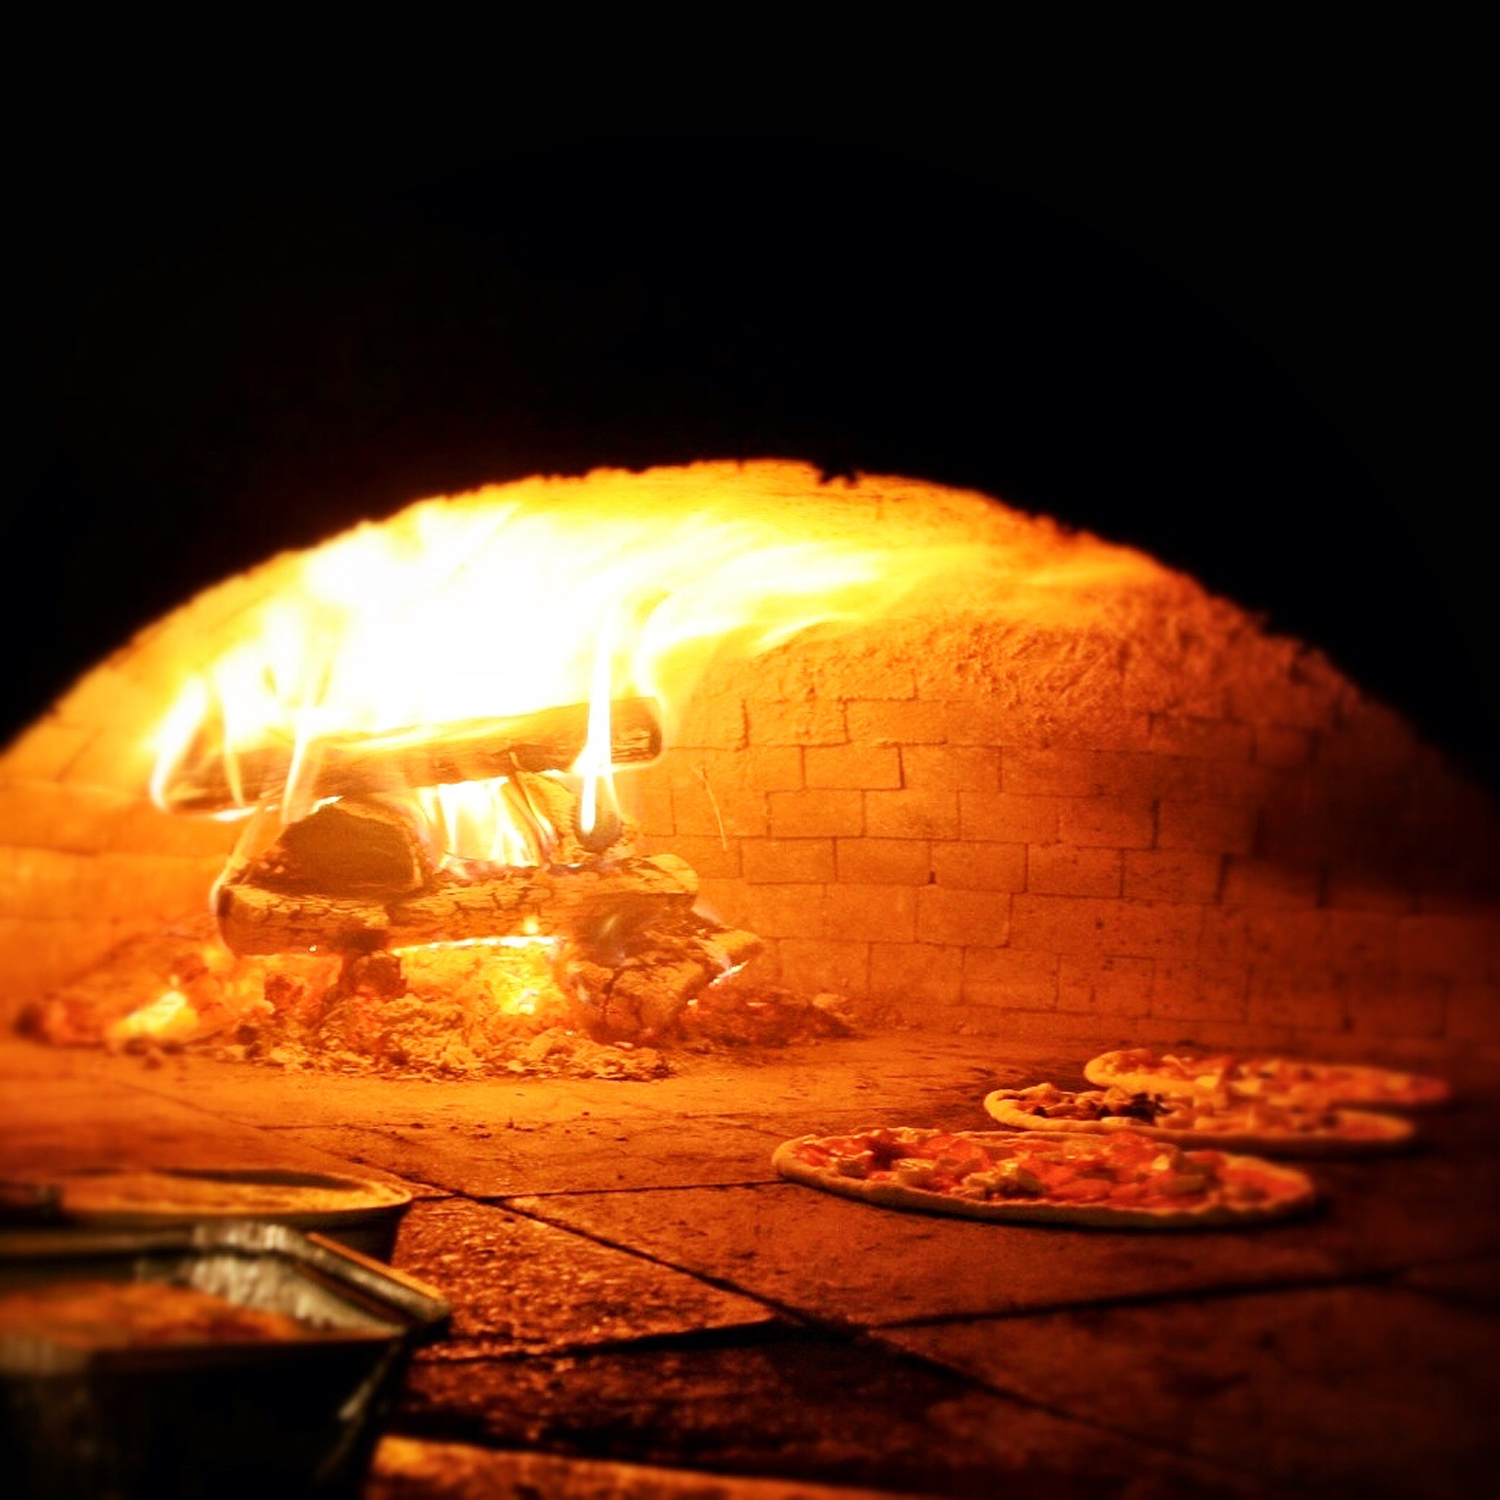 Wood Burning Oven with Pizza Cooking on the Hearth